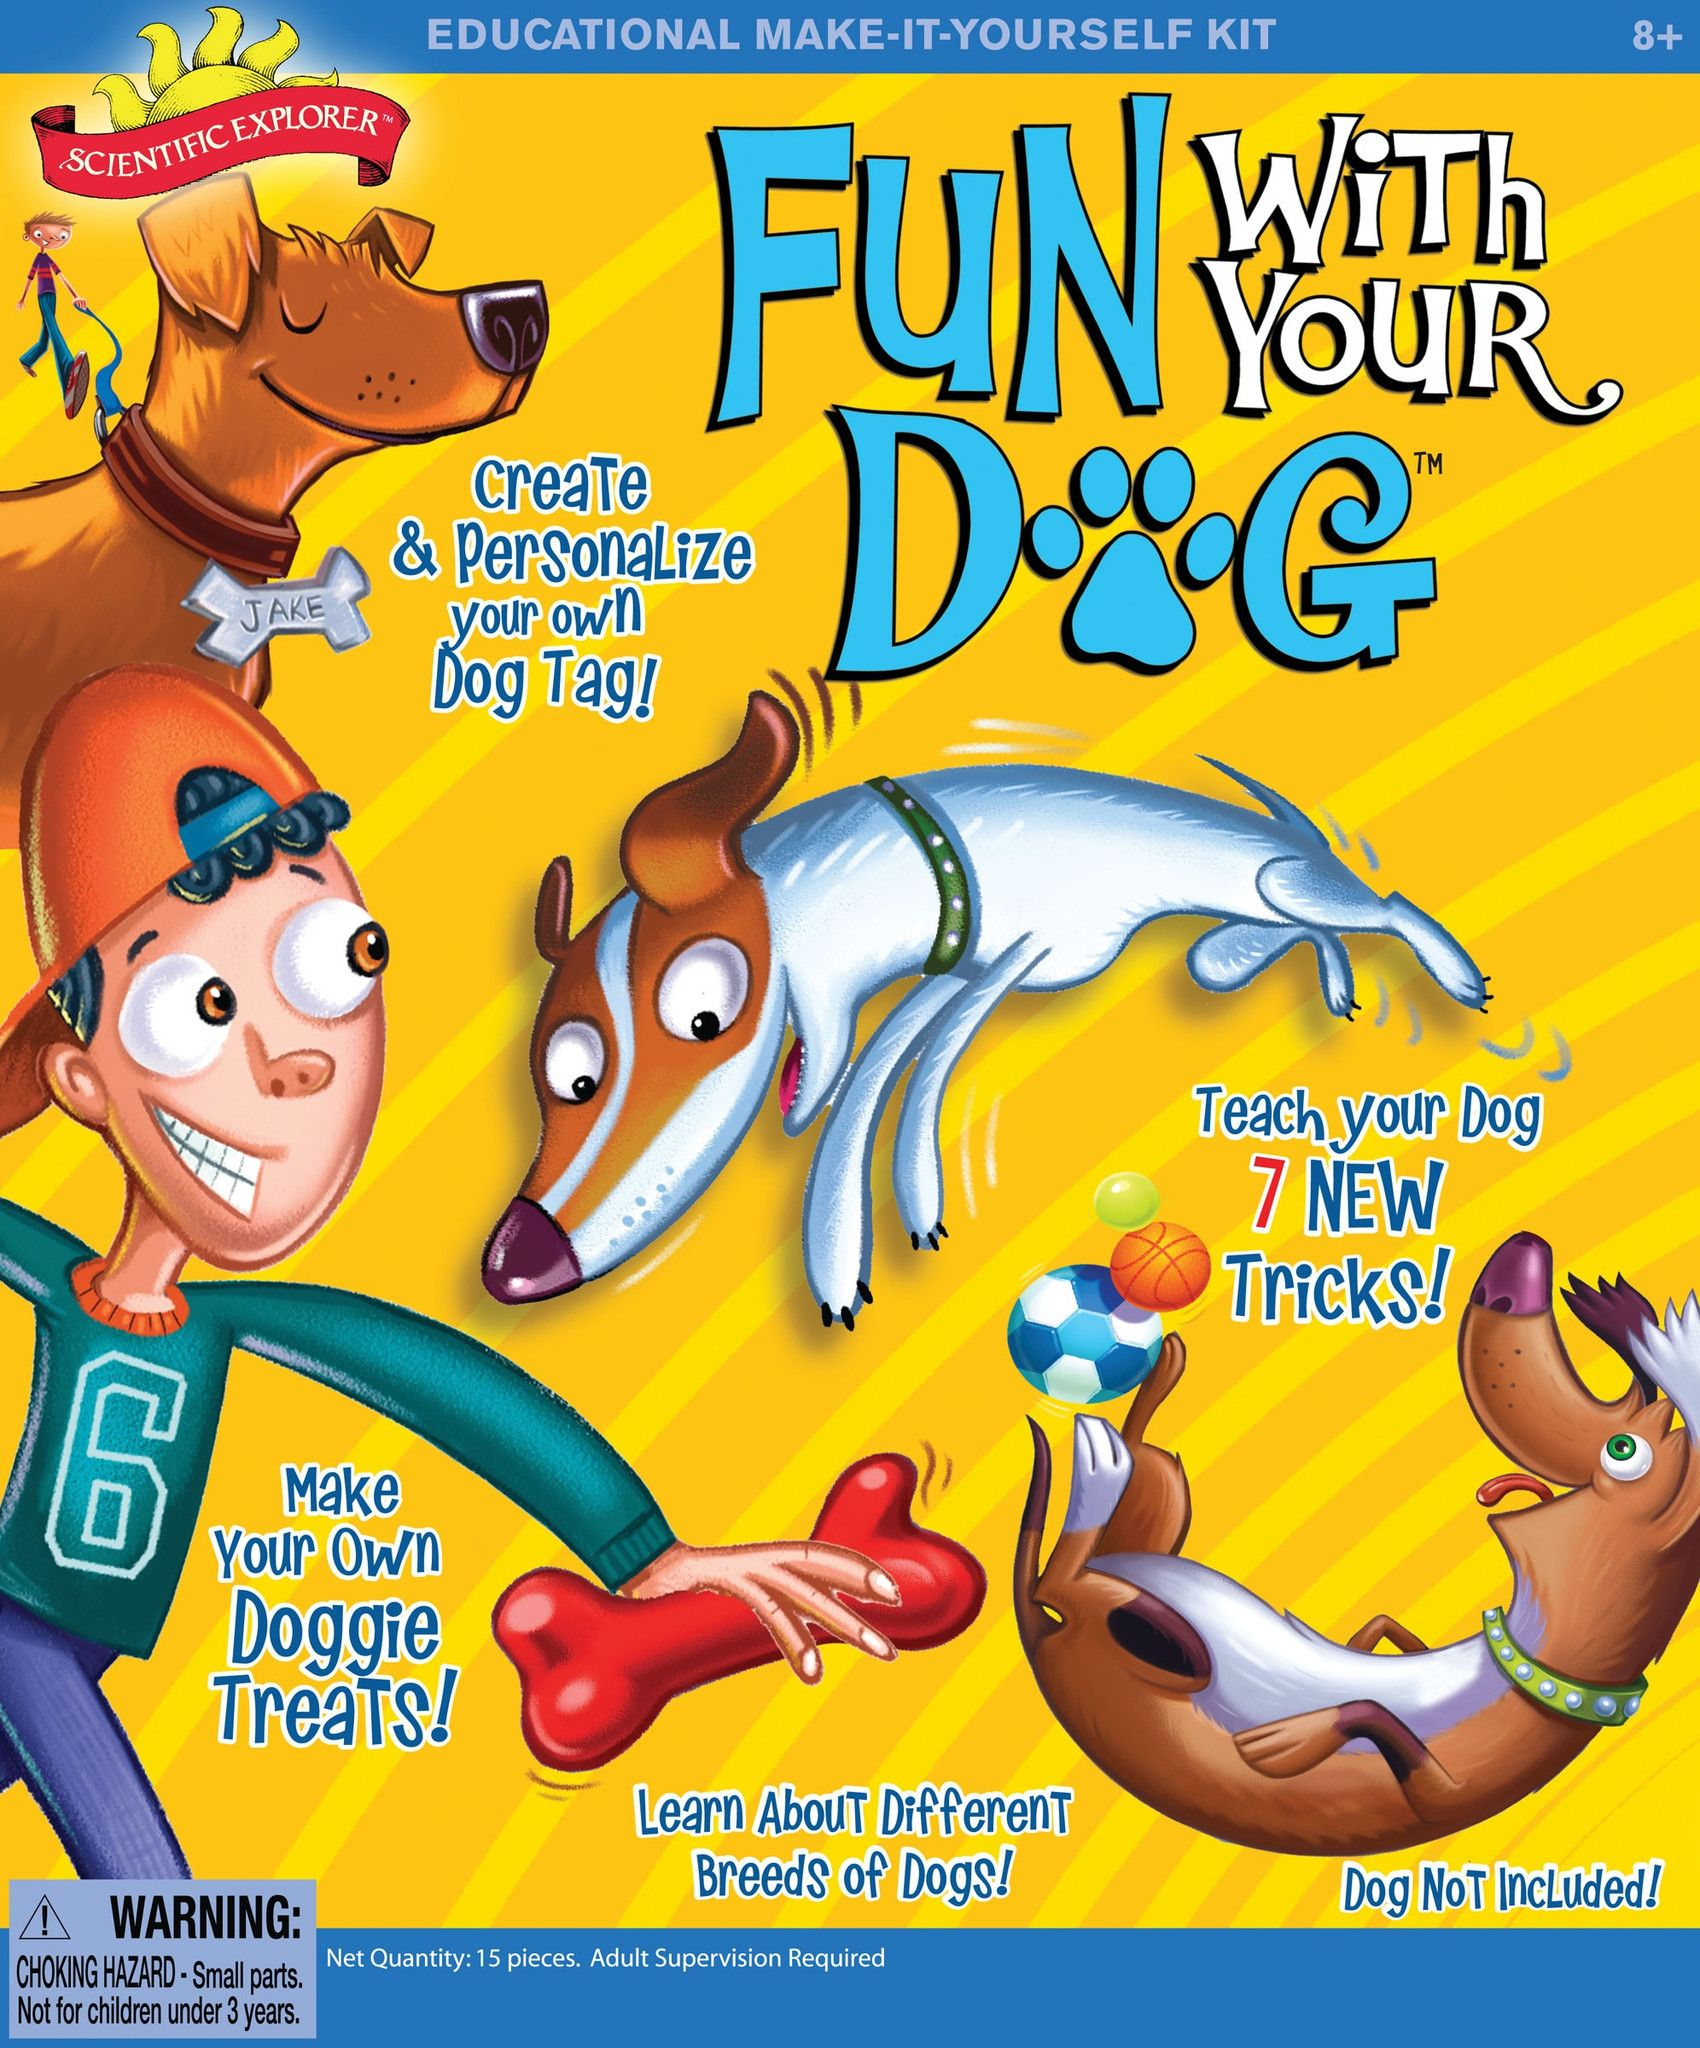 Scientific Explorer's Fun With Your Dog Activity Kit, by Poof-Slinky